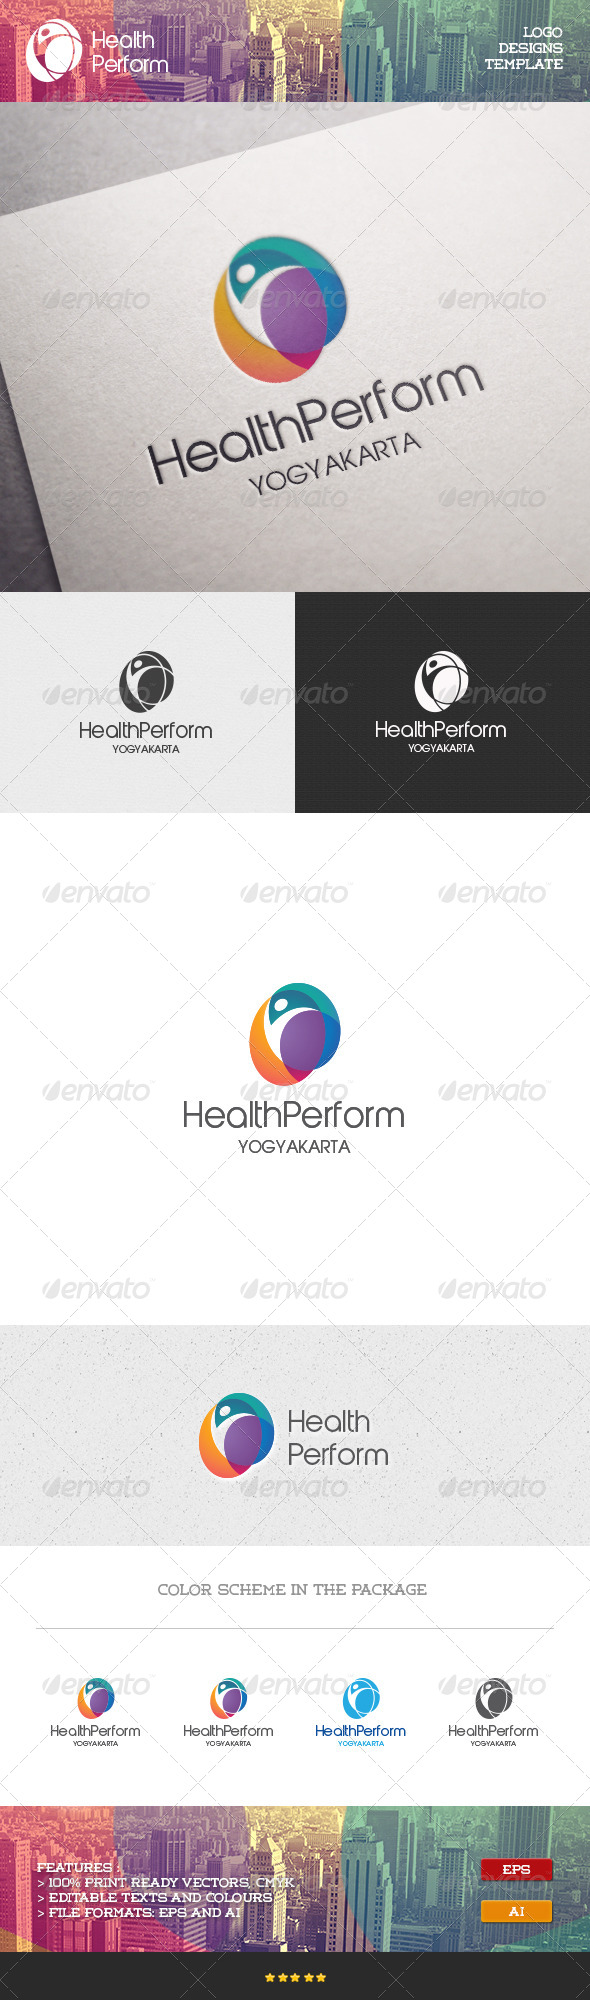 GraphicRiver Health Performance Logo 7098774